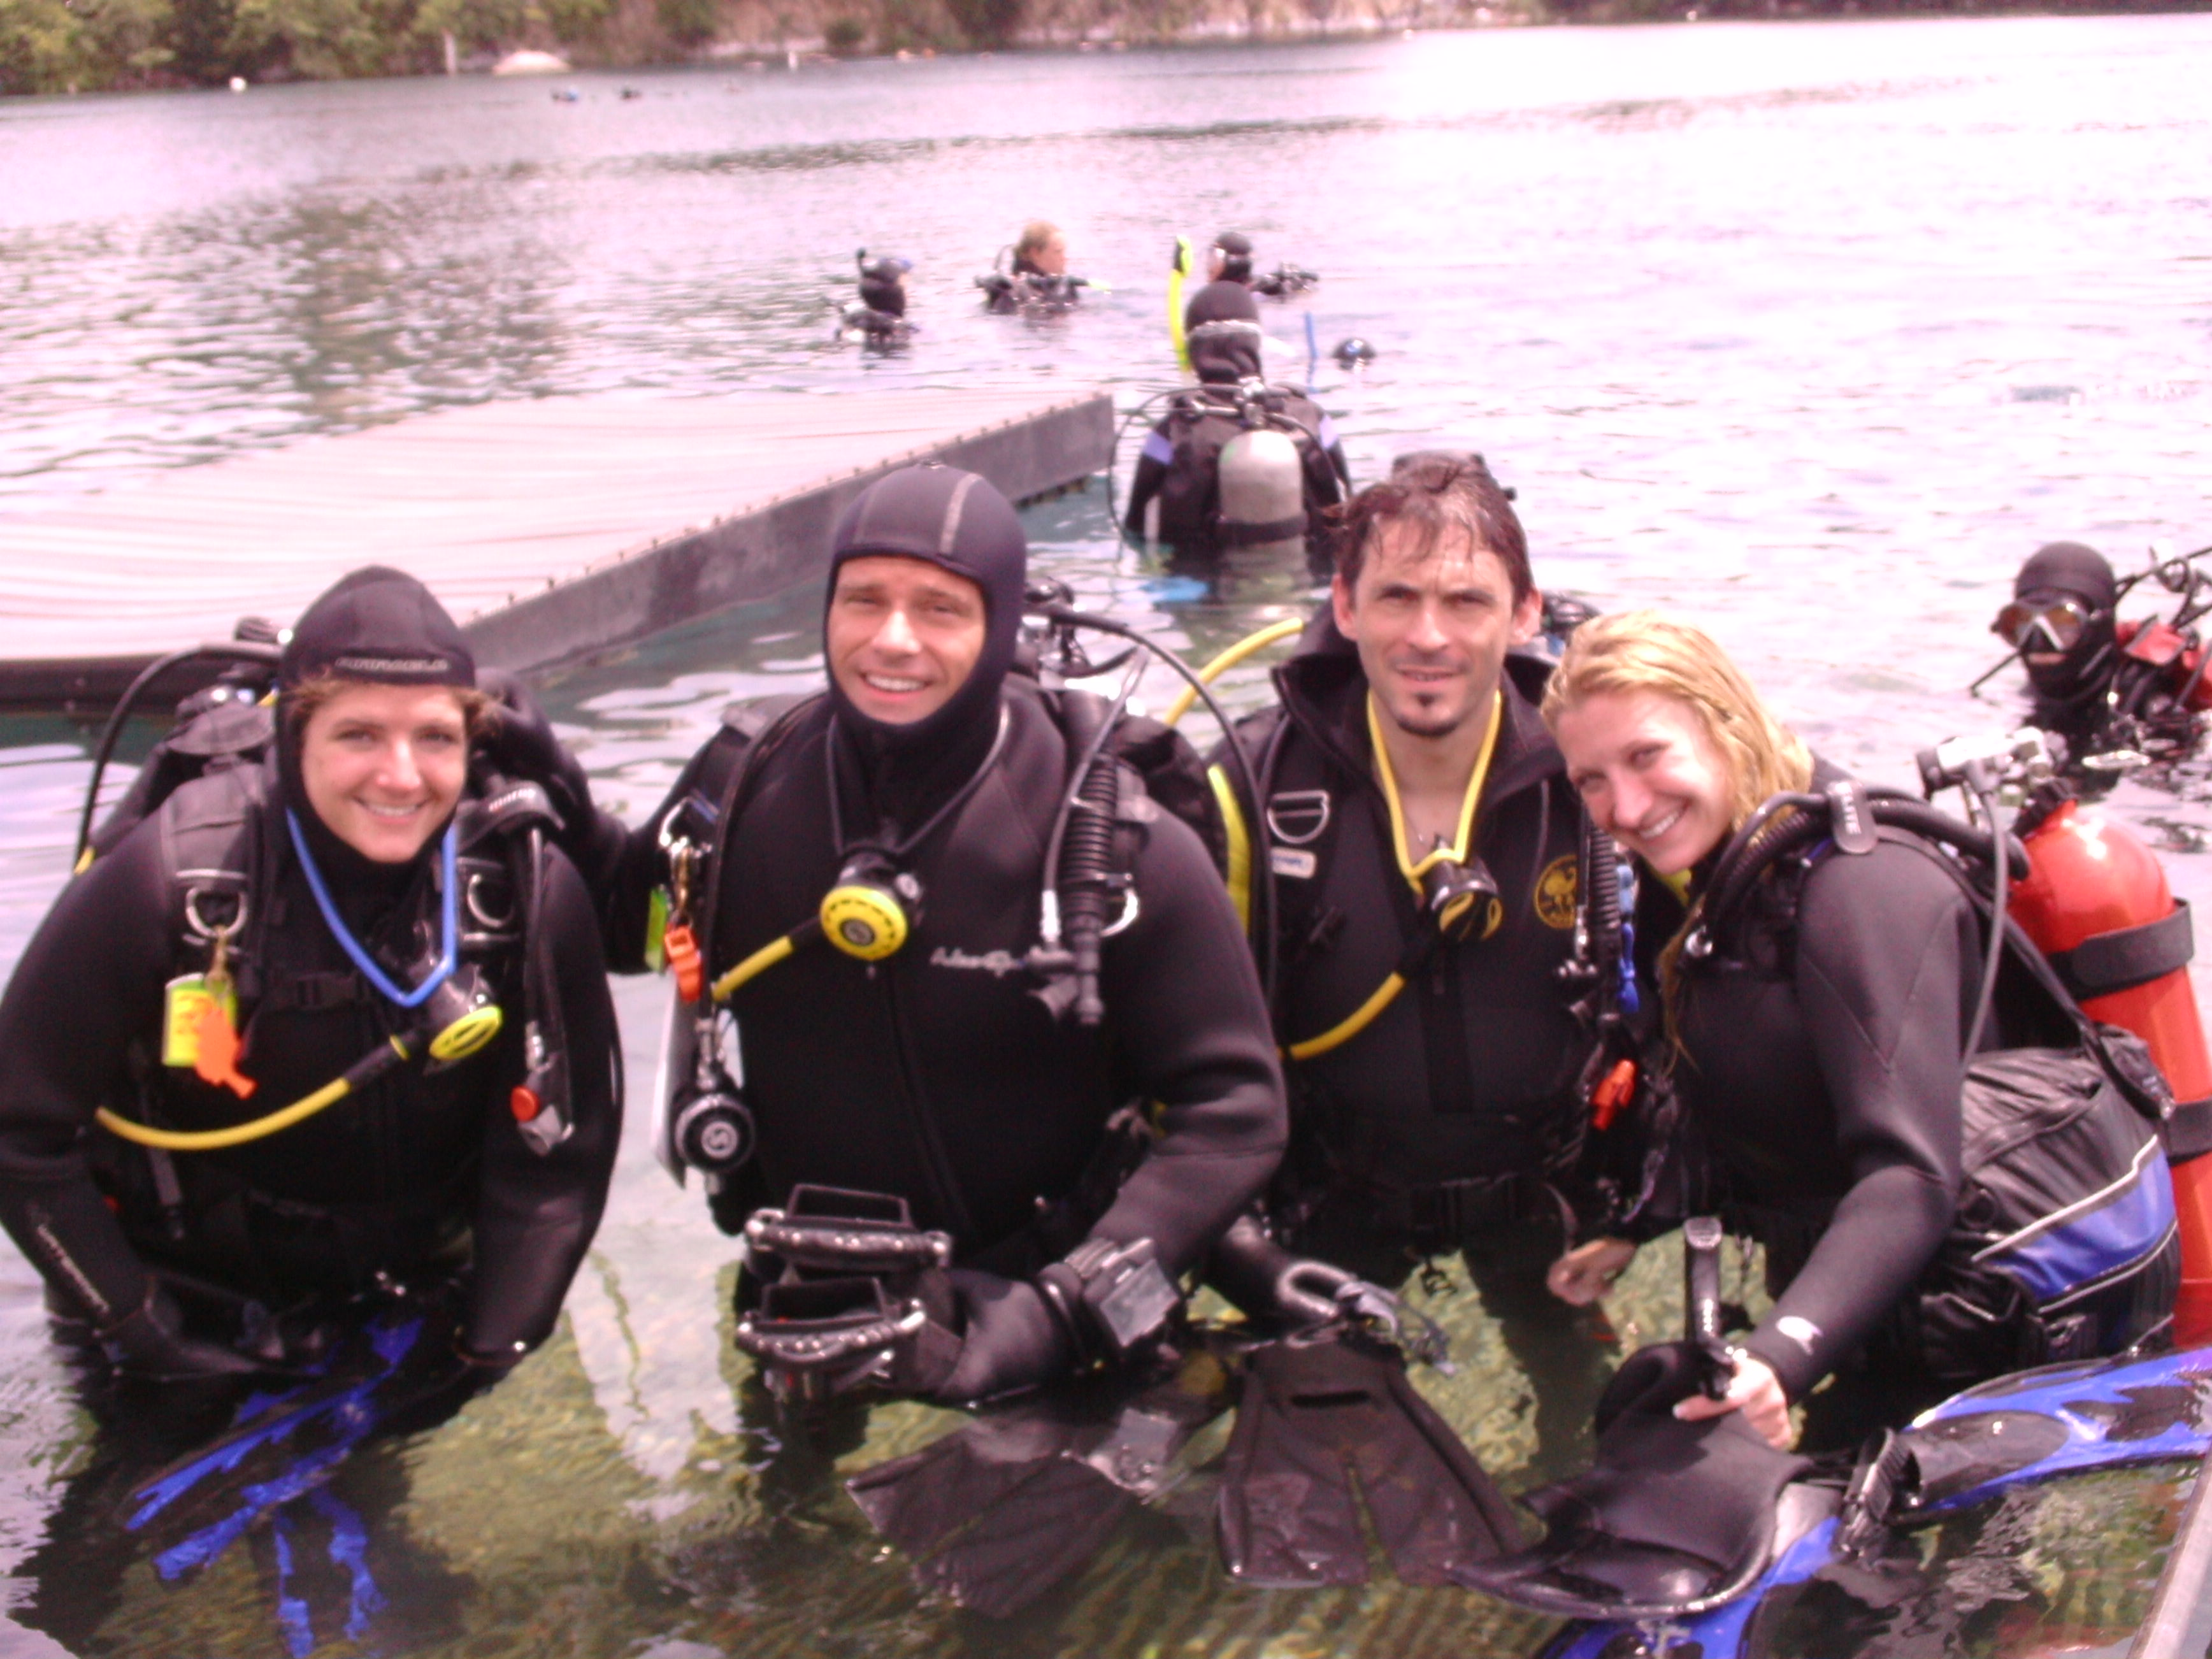 Padi Open Water Certification Check Out Dives In Nj Scuba Diving